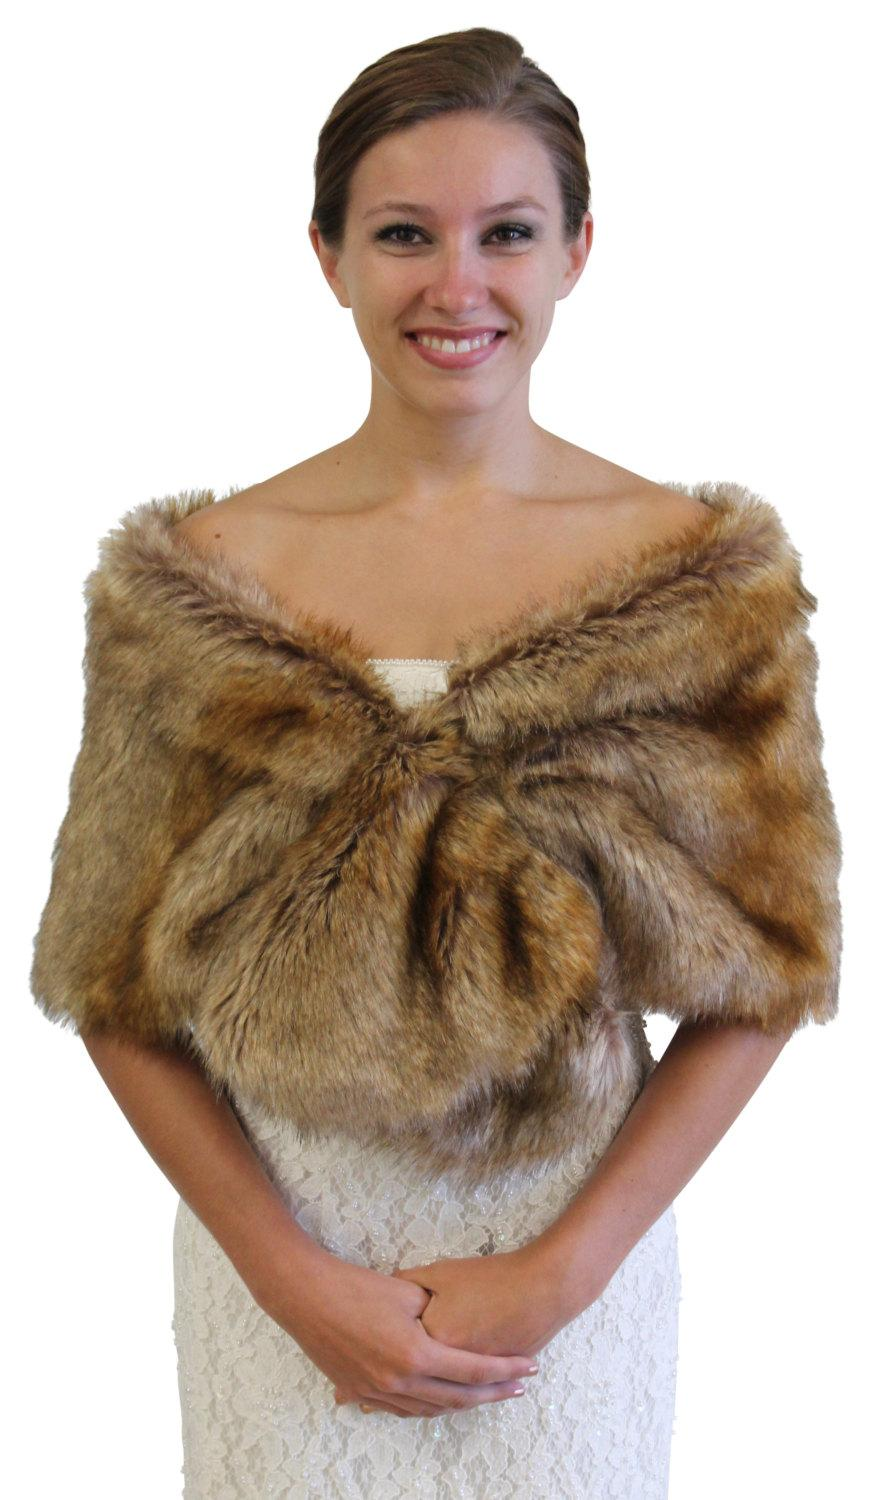 Boda - Vintage Brown faux fur wrap, Bridal wrap, Bridal shrug, faux fur shrug, faux fur stole, faux fur shawl, faux fur cape 800M-VBRN